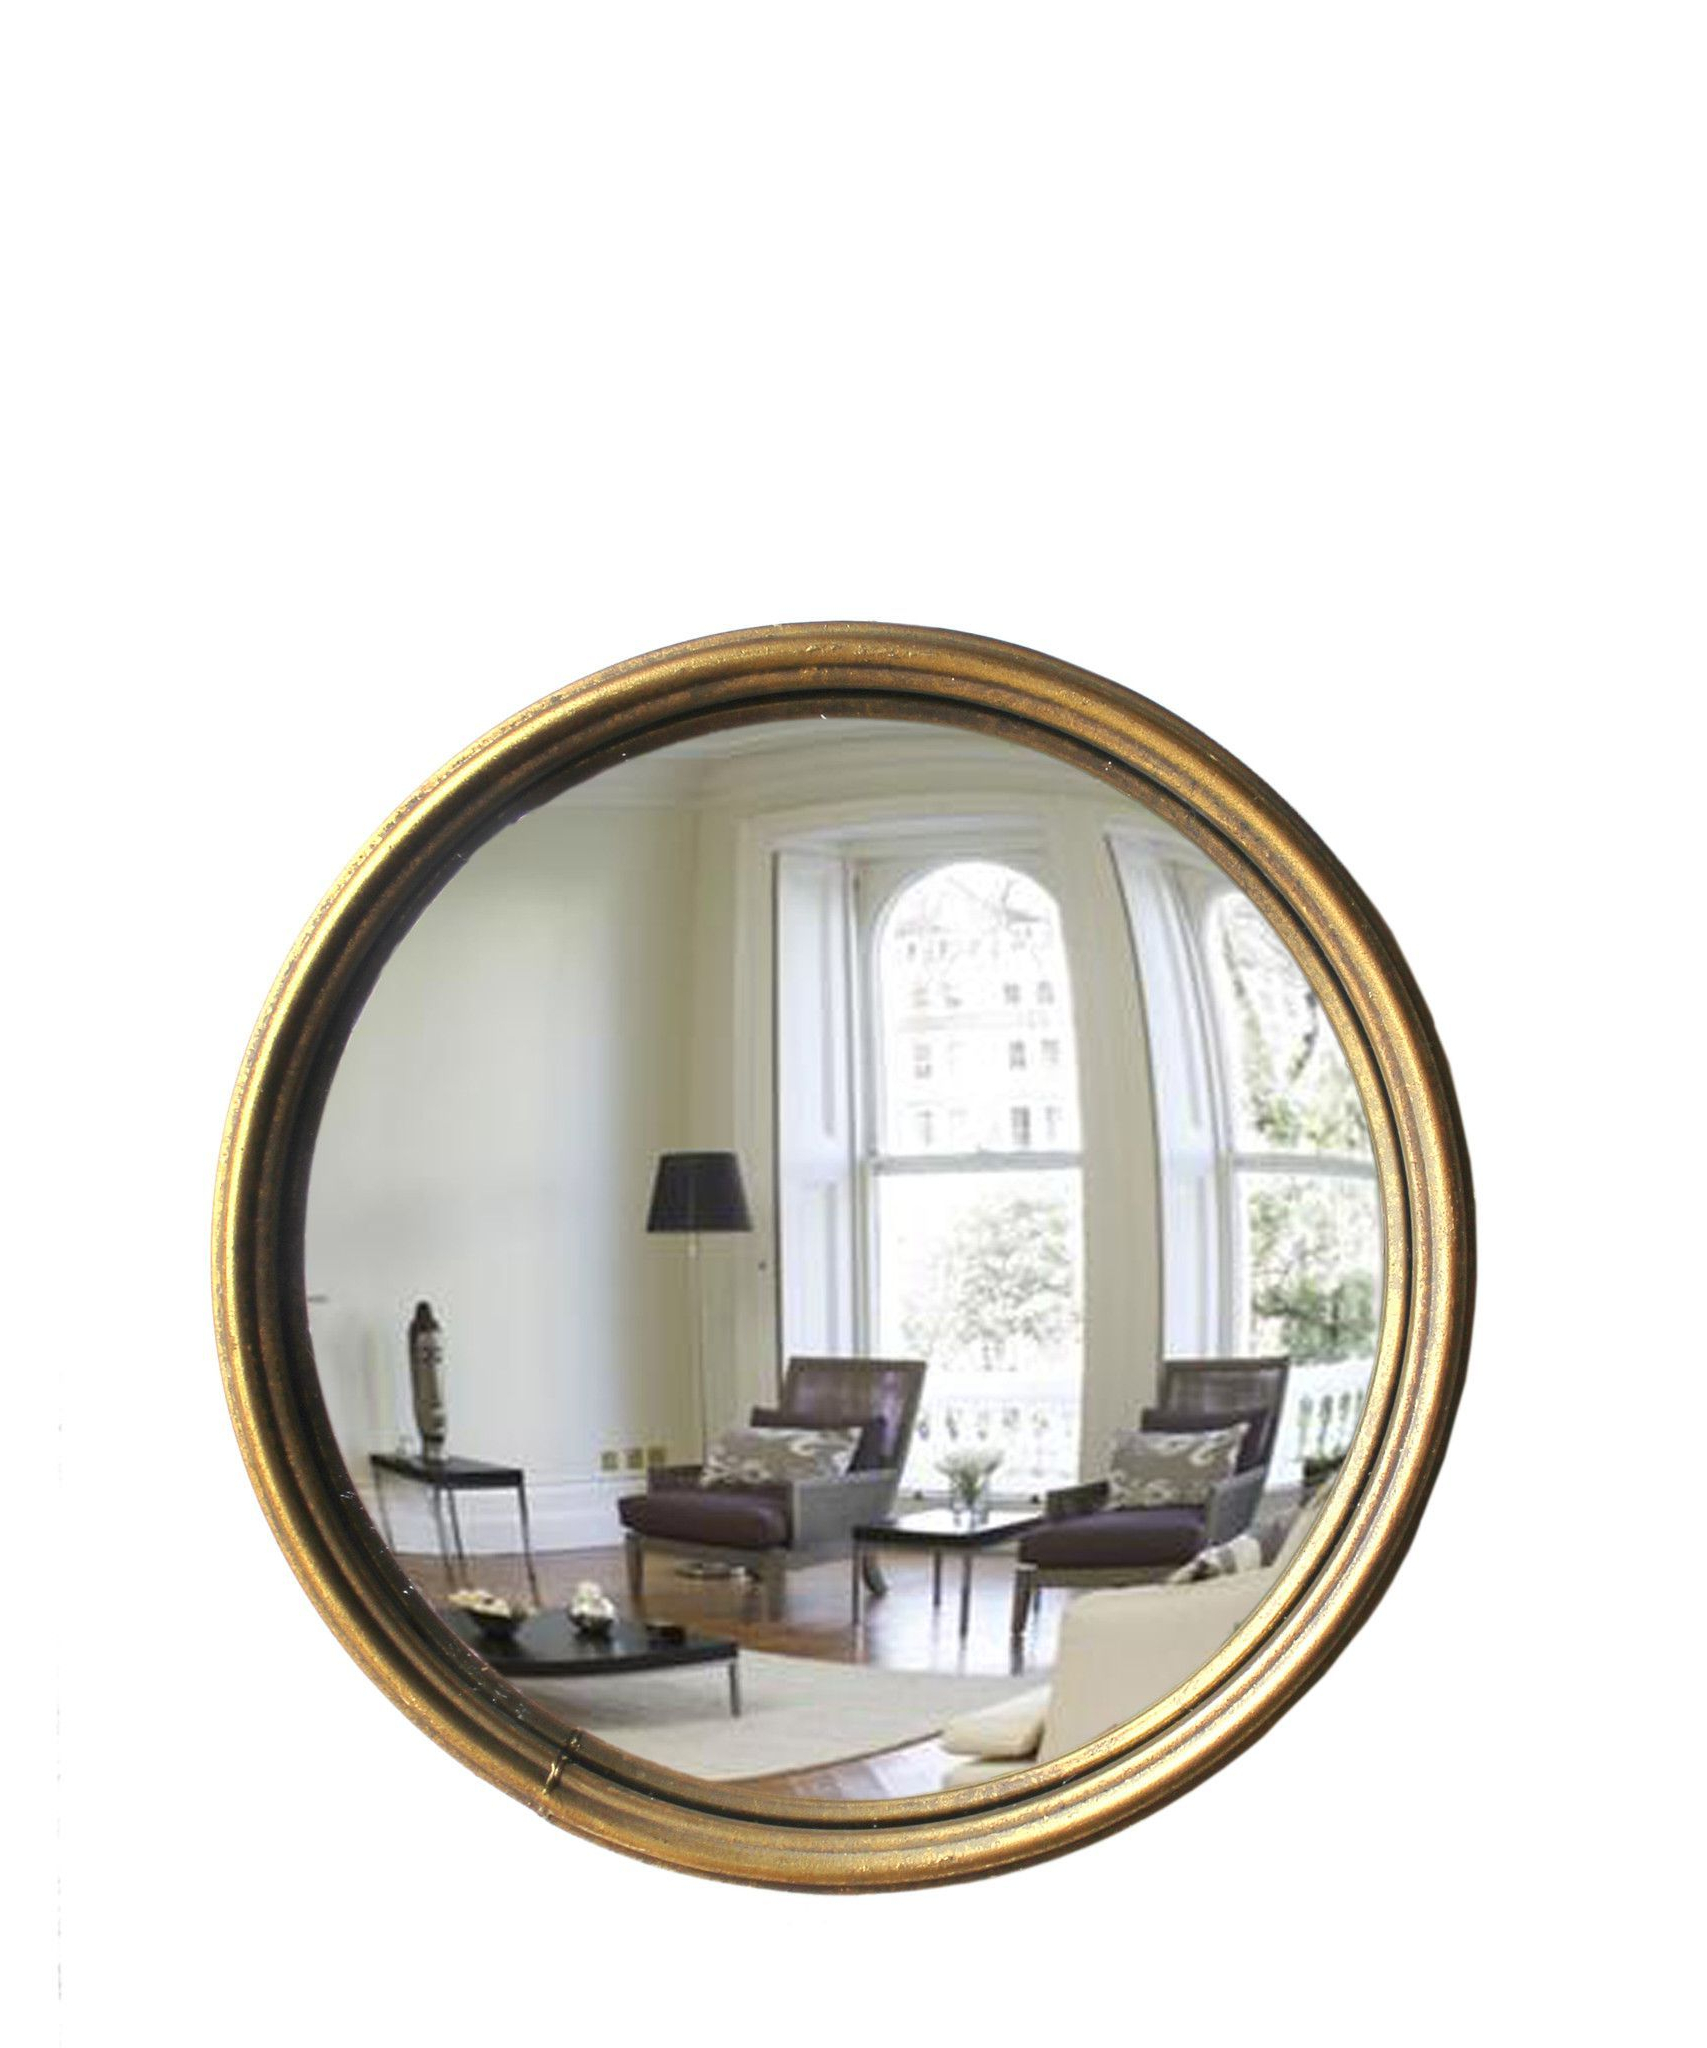 Round Convex Wall Mirrors With Recent Round Convex Mirror, Antique Gold – Skinny Brass Frame (View 17 of 20)